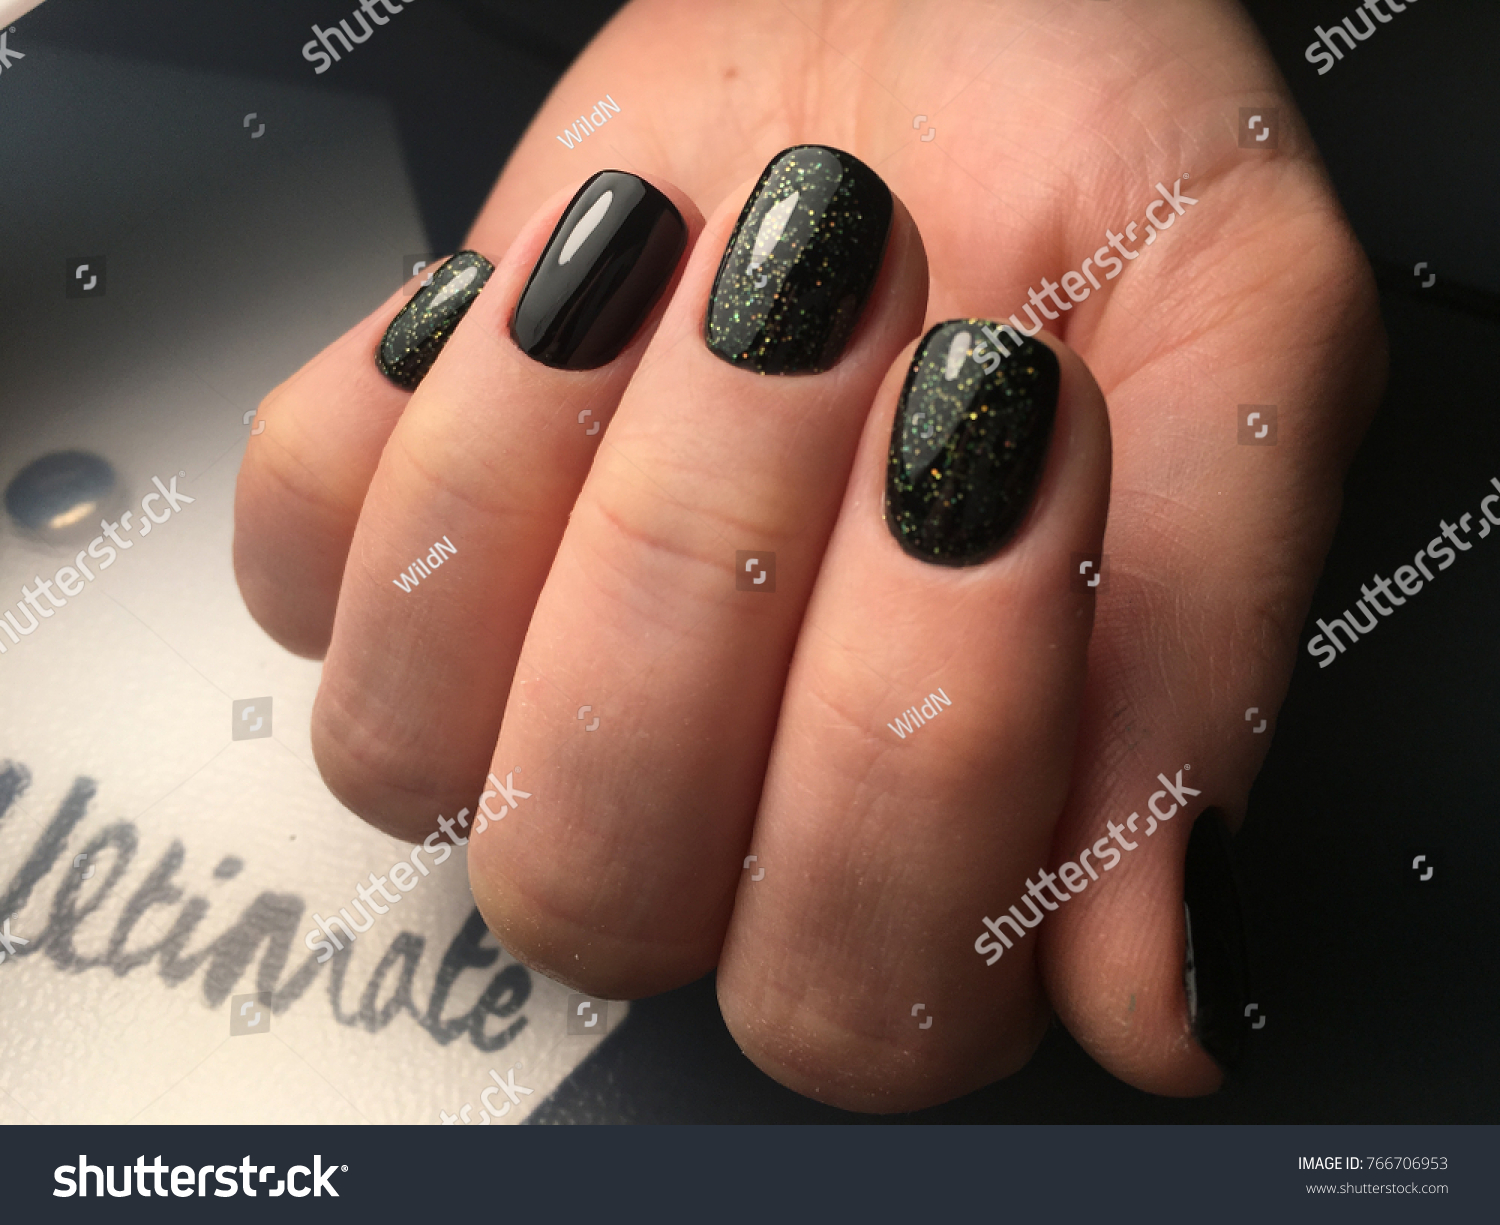 Shine Green Black Nails Manicure Beauty Stock Photo (Royalty Free ...